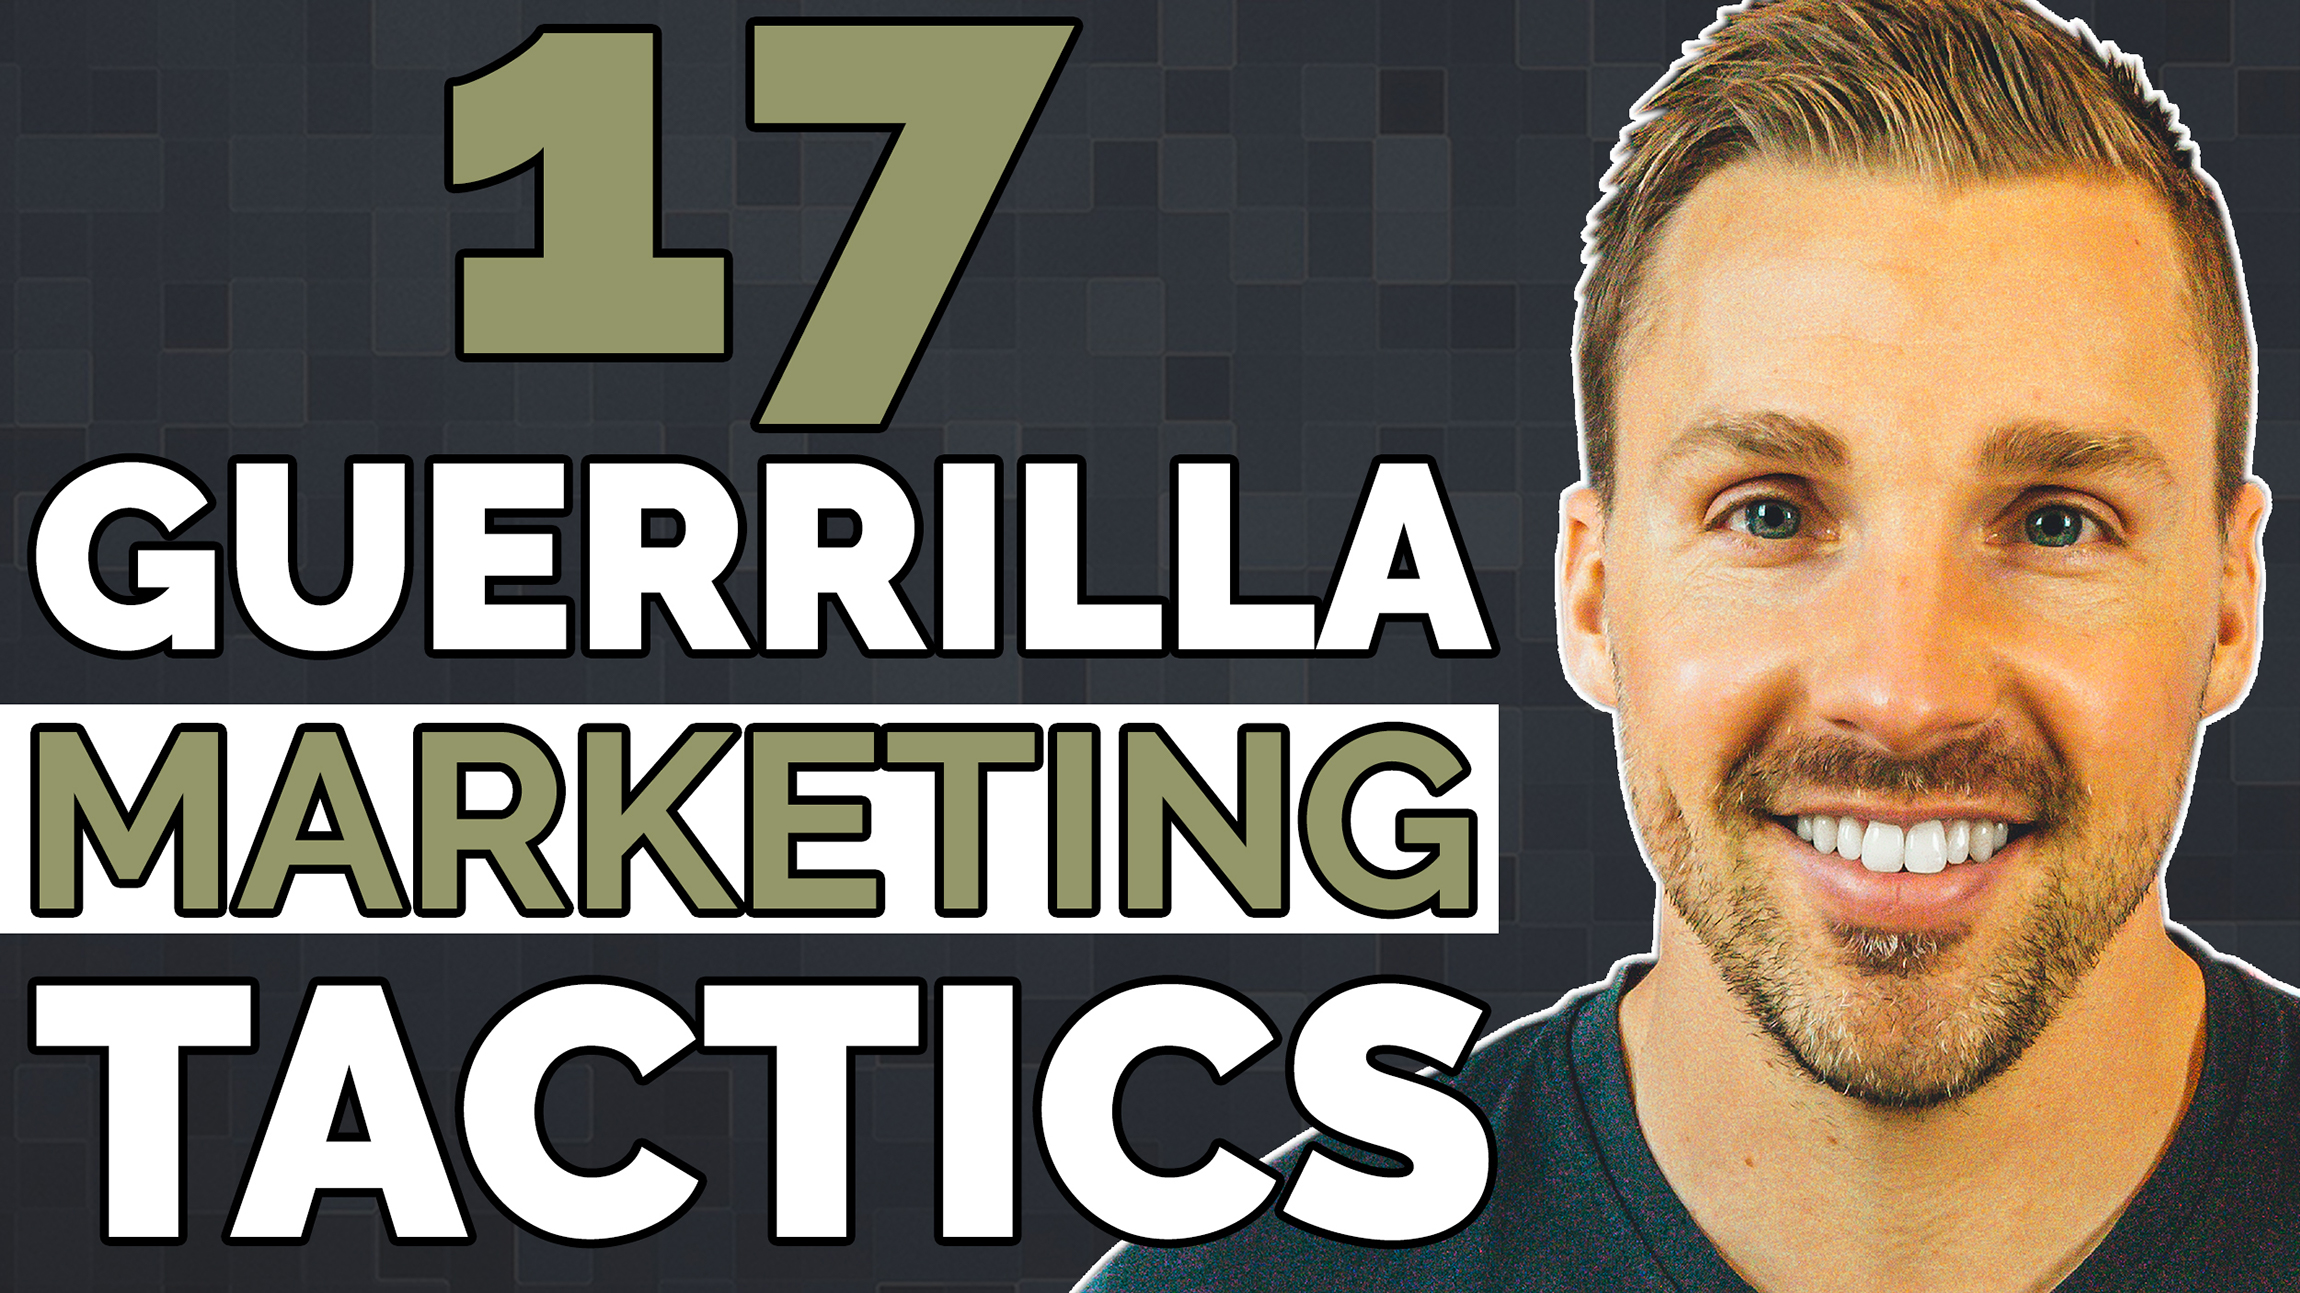 17 guerrilla marketing tactics for entrepreneurs-2